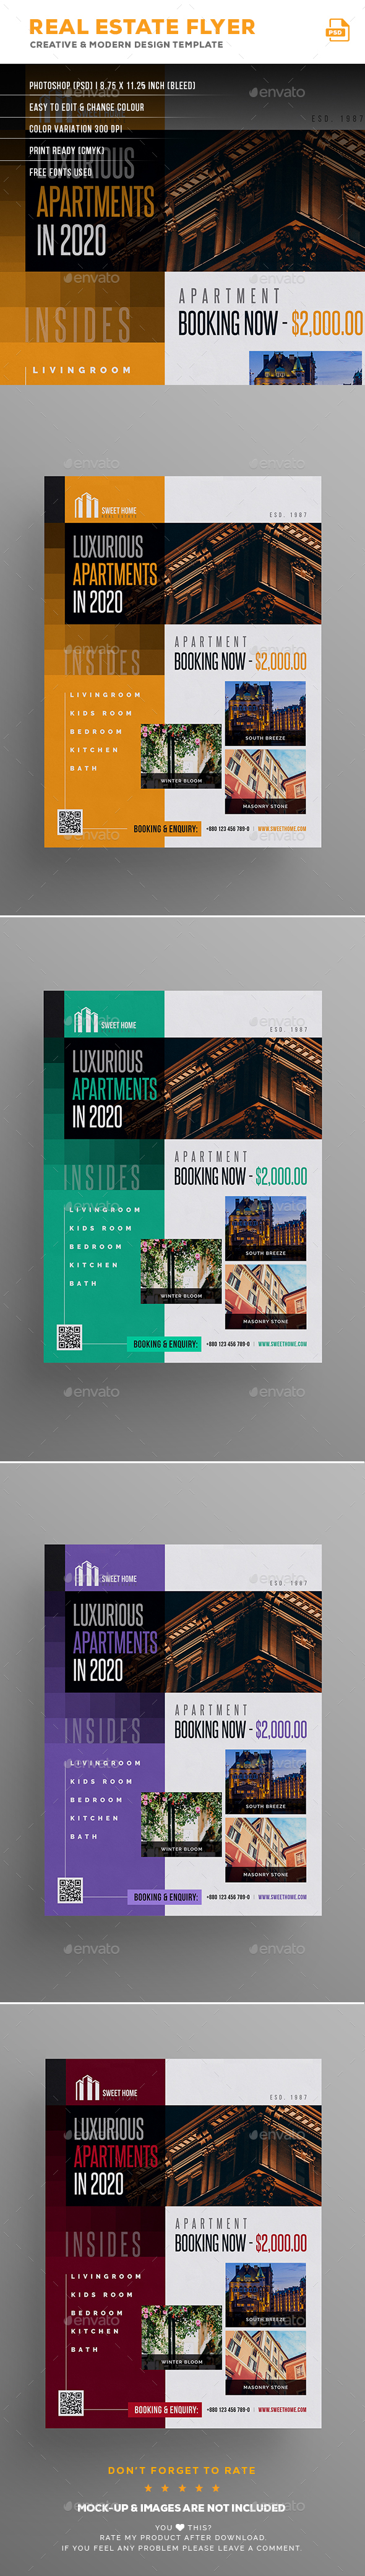 Real Estate Flyer - Commerce Flyers